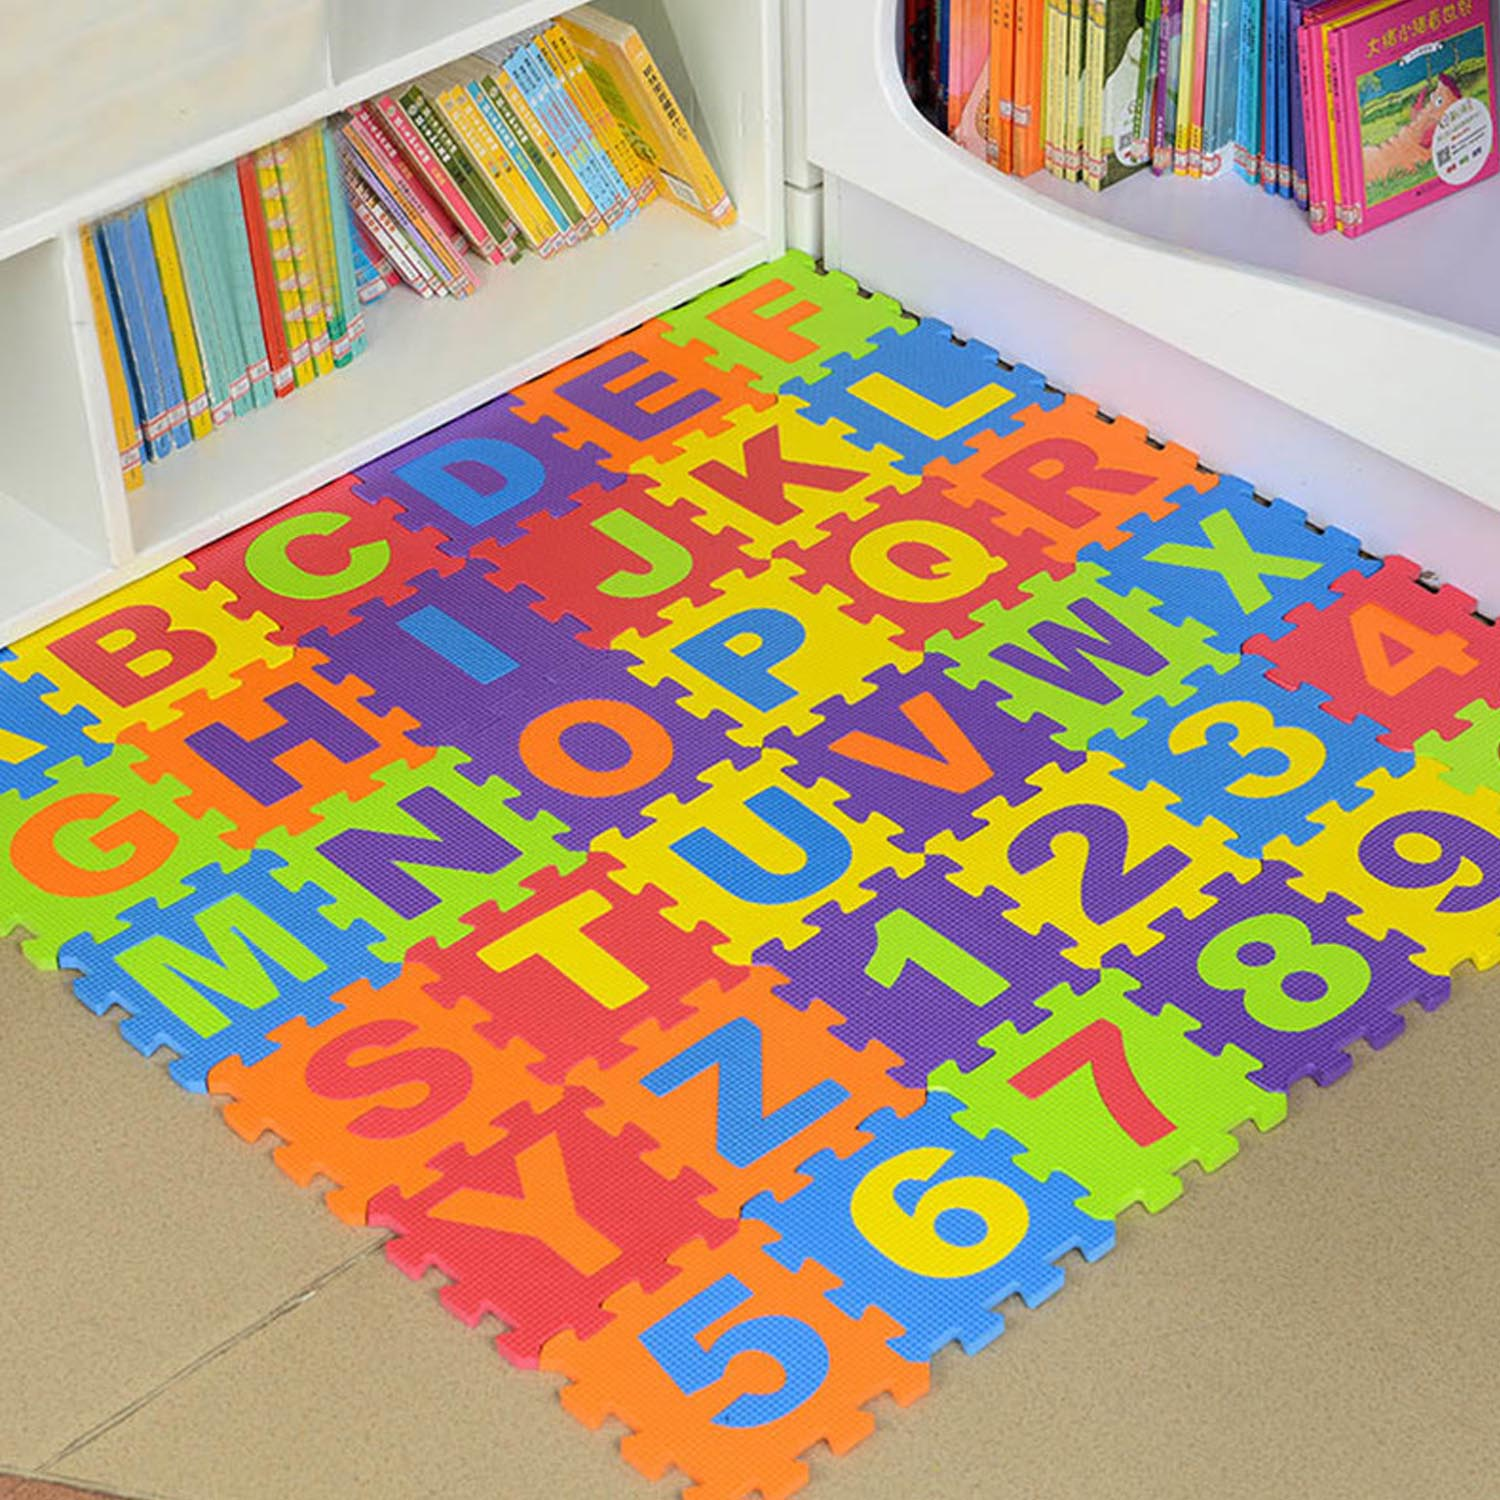 36PCS Kids Foam Alphabet Number Puzzle Mats Crawling Playmats Educational Toys For Toddlers Children Soft Pad Room Supplies